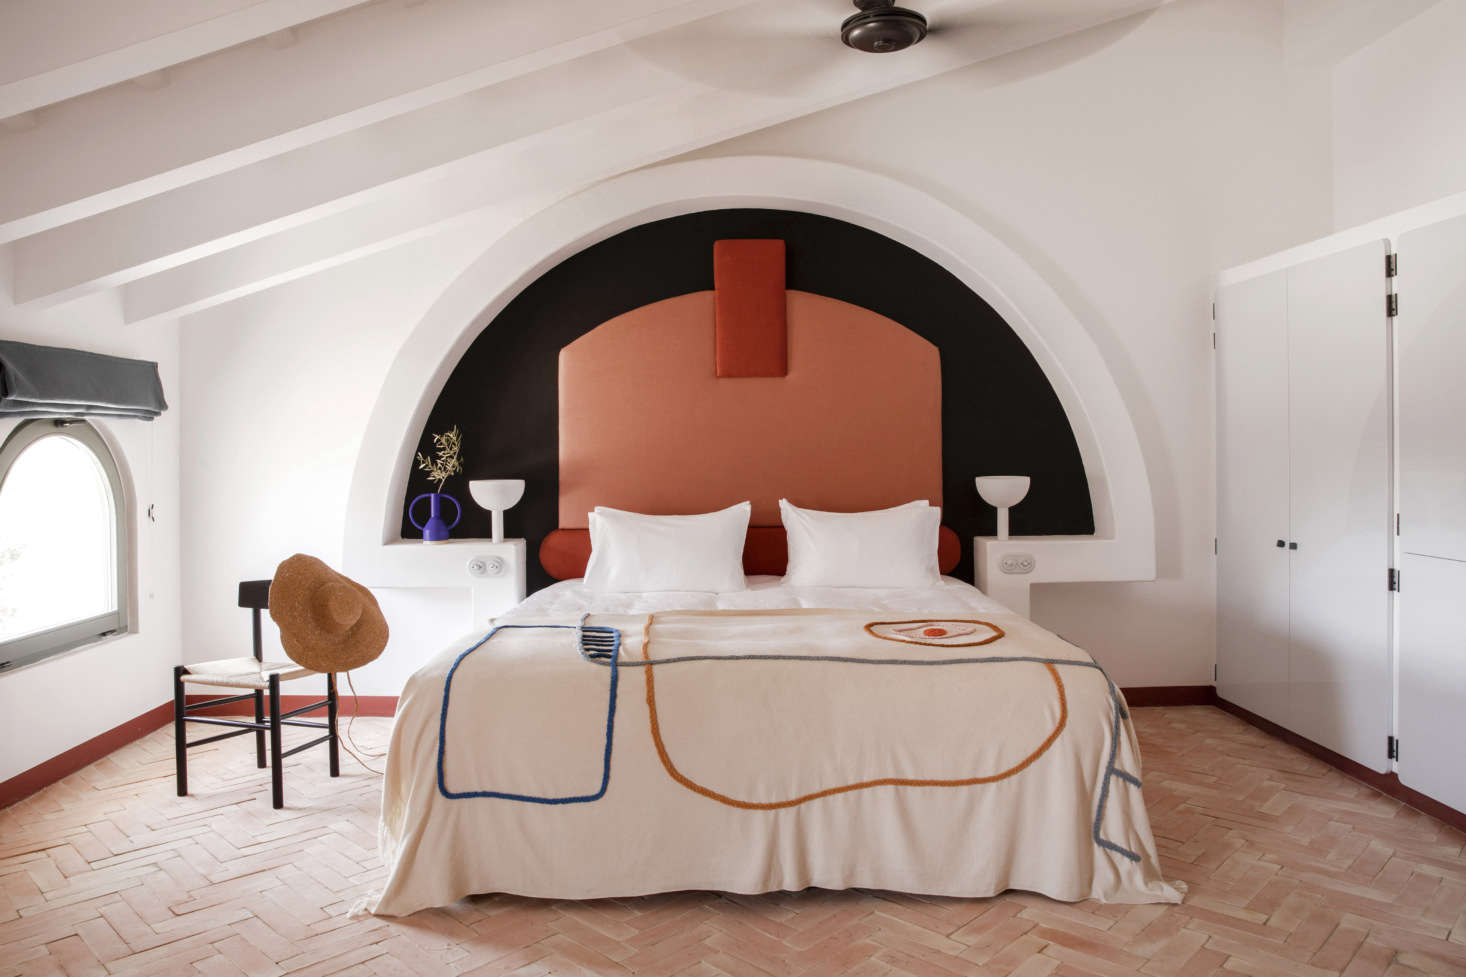 Meilichzon is known for her inventive beds—and never repeats herself. At Menorca Experimental, she built altar-like concrete alcoves finished in white lime and inset with upholstered headrests in two shades of terra-cotta. The embroidered cotton bedspreads were made for the hotel by textile and ceramic studio LRNCE of Morocco. The herringbone floor is composed of terra-cotta.